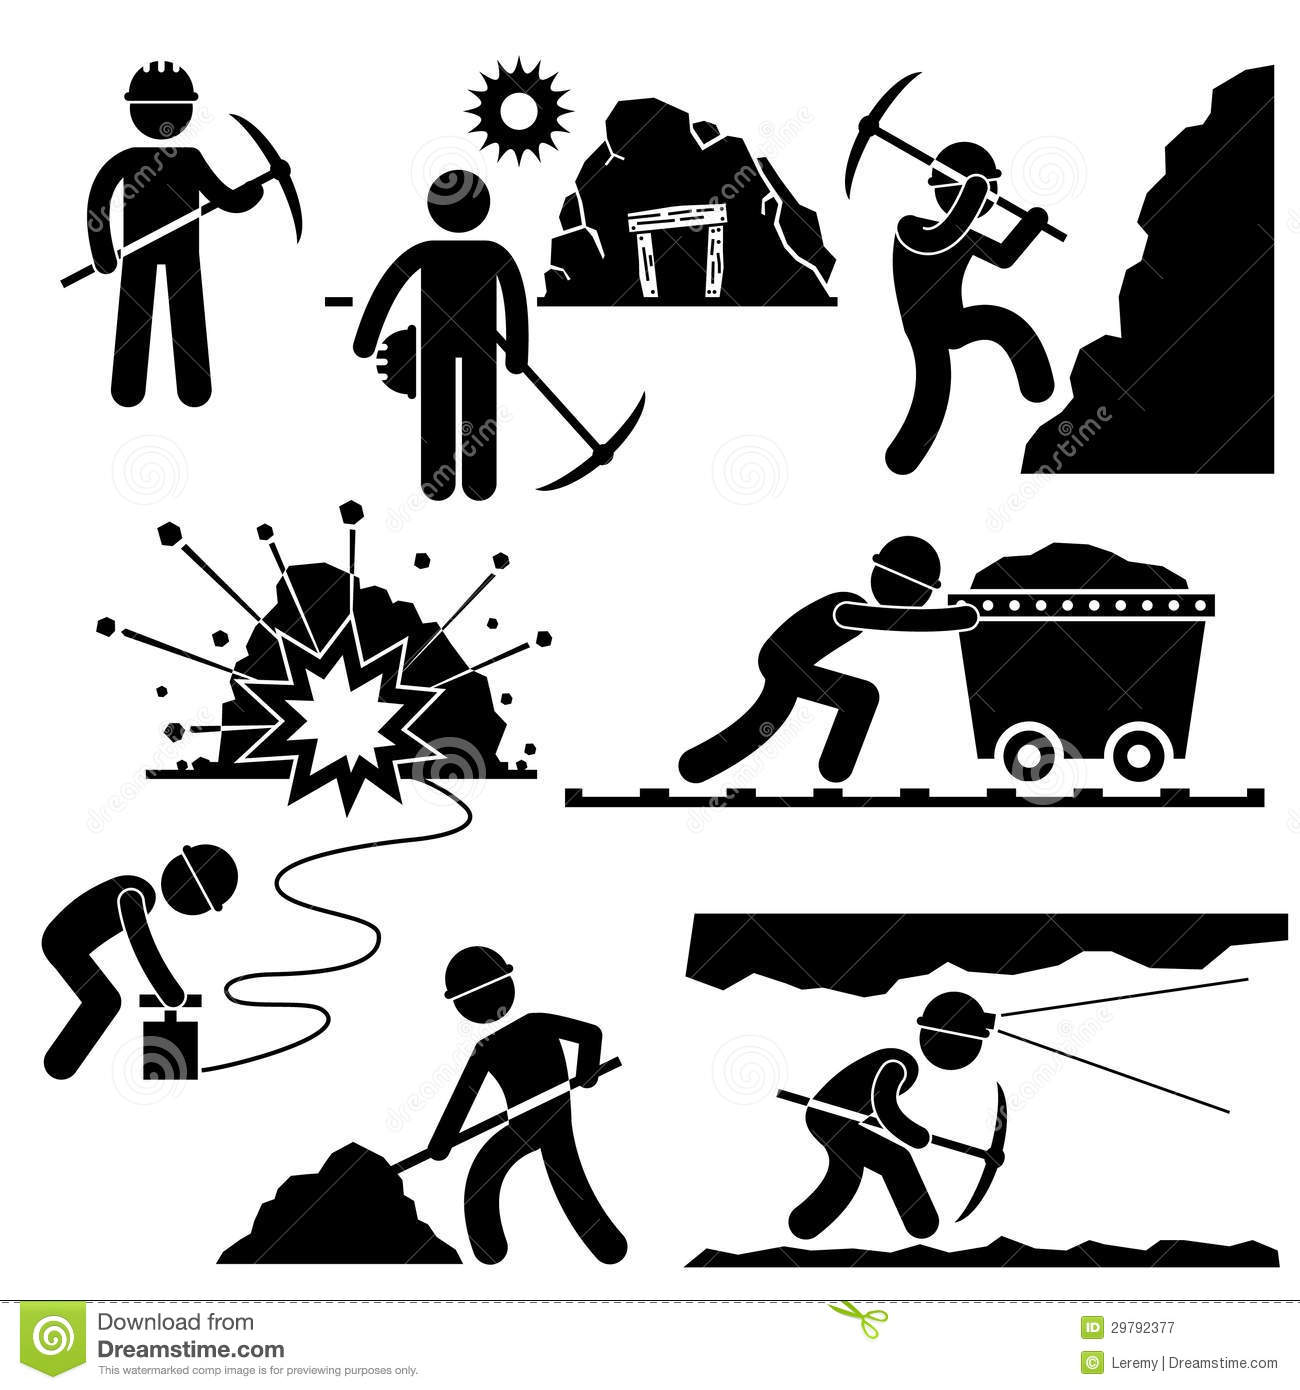 Bust A Groove in addition Watch additionally Stykz besides Vector Numbers  posed Of Sparkling Diamond moreover Royalty Free Stock Photography Set Pictograms Representing Mining Worker Working Hard Mining Area Image29792377. on stick figure animation